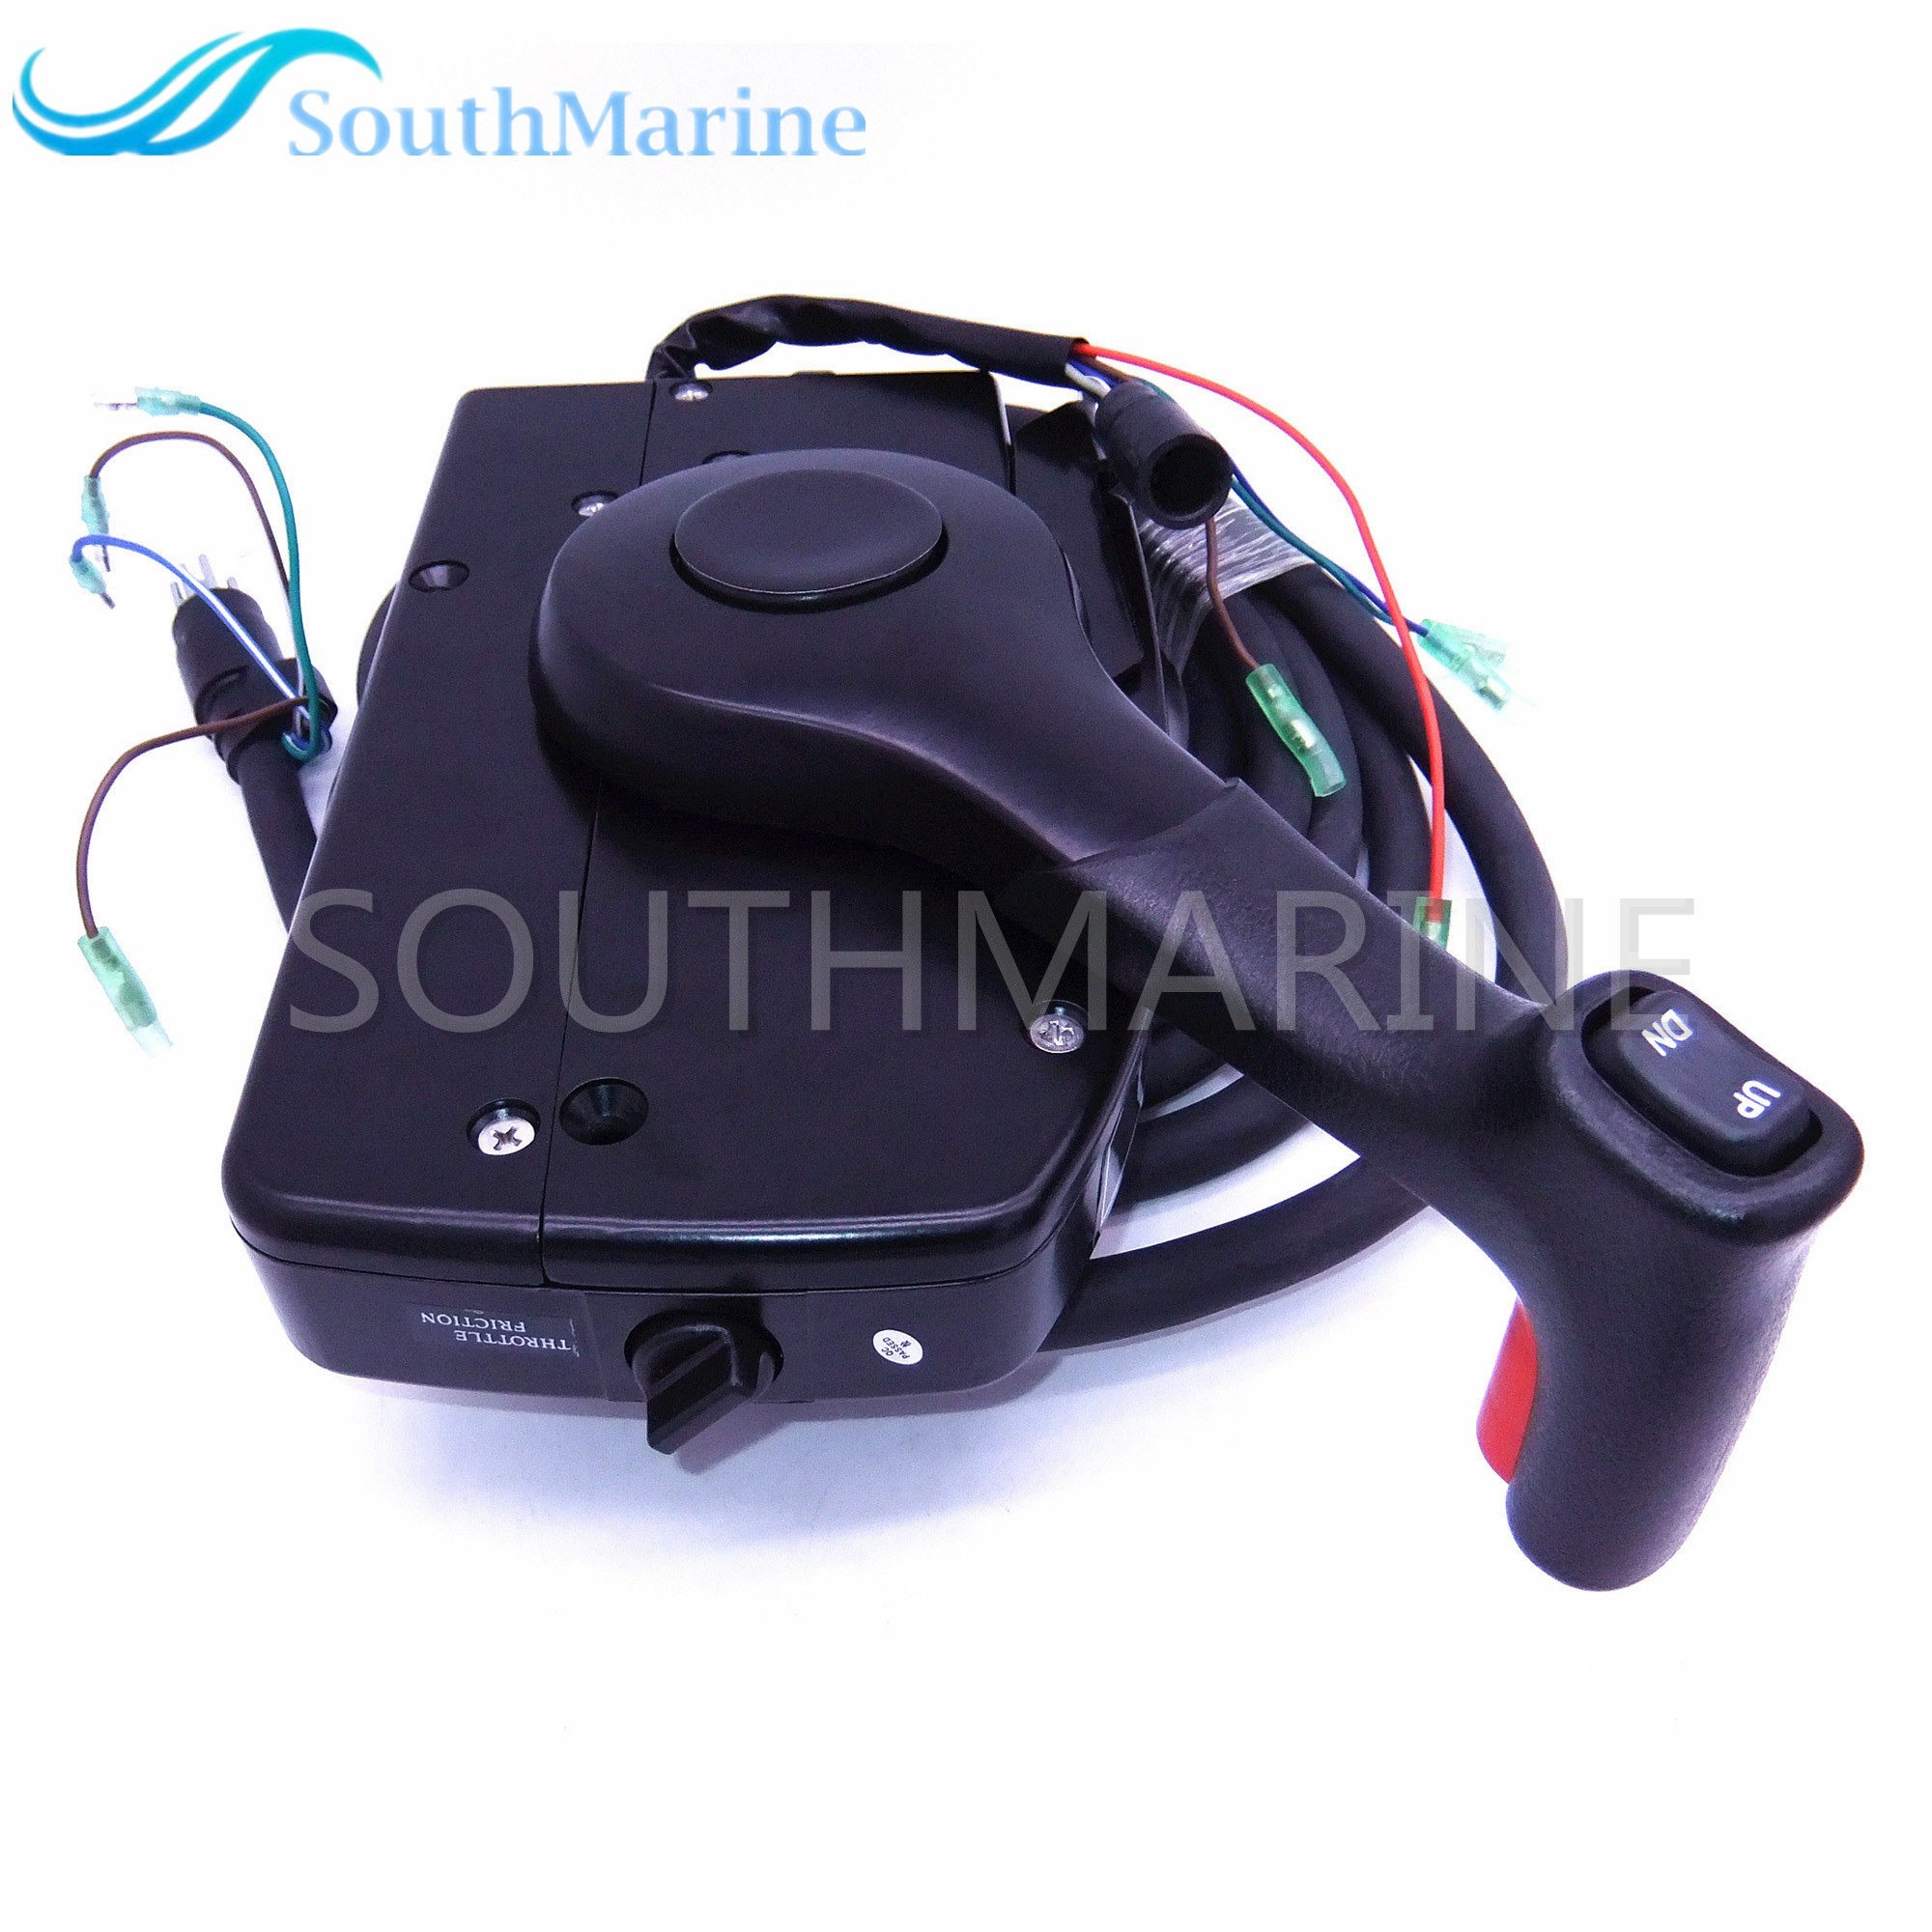 881170A15 Boat Motor Side Mount Remote Control Box With 8 Pin for Mercury Outboard Engine PT Left Side